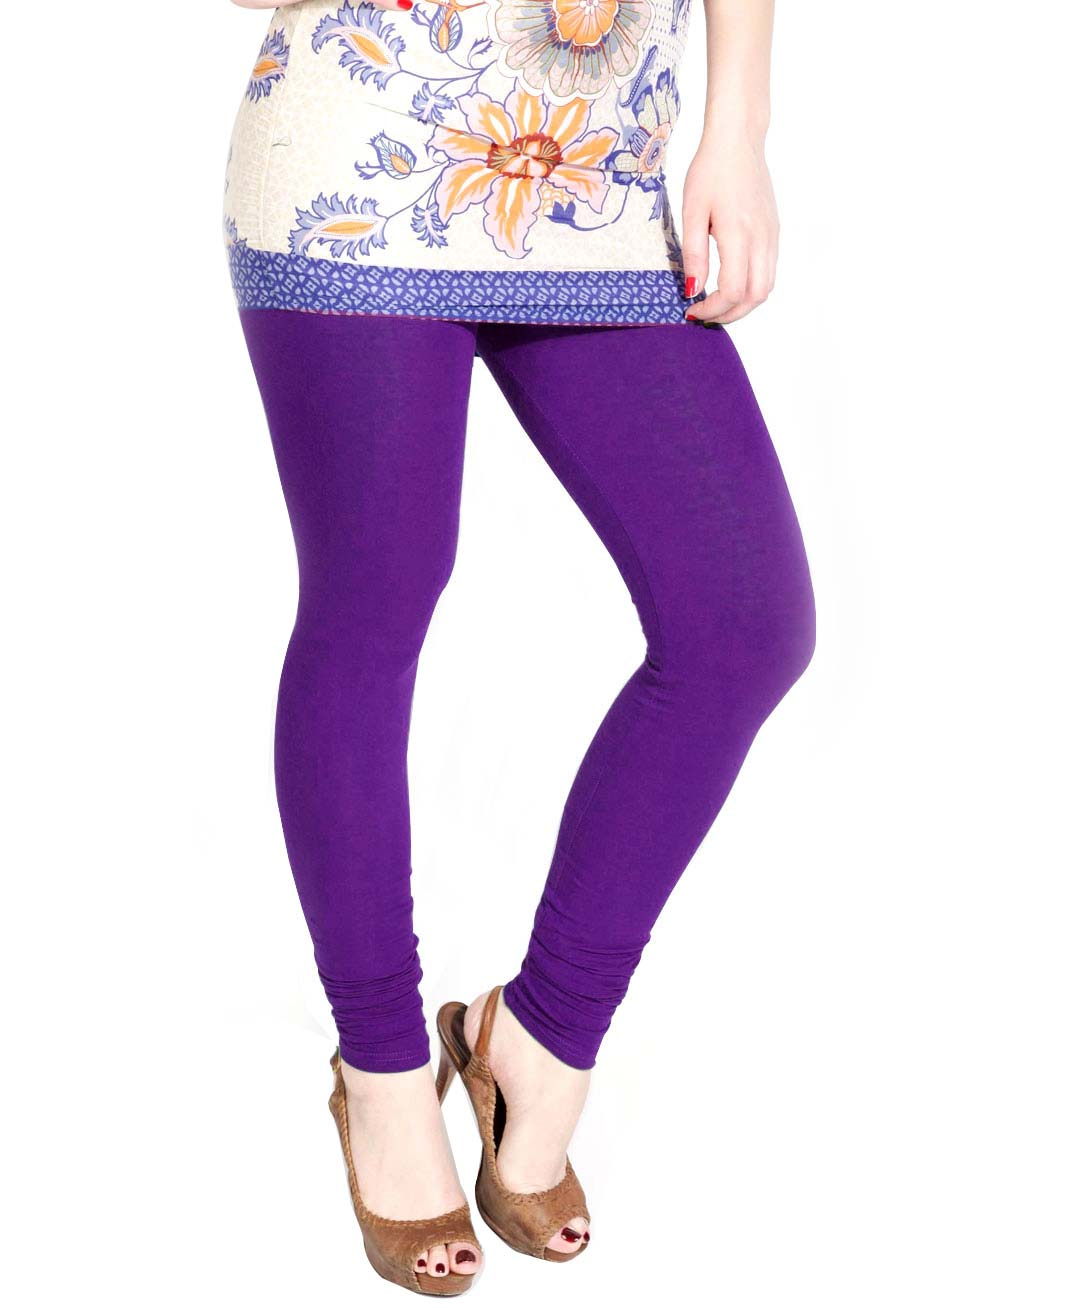 Leggings fashion 2016 trend